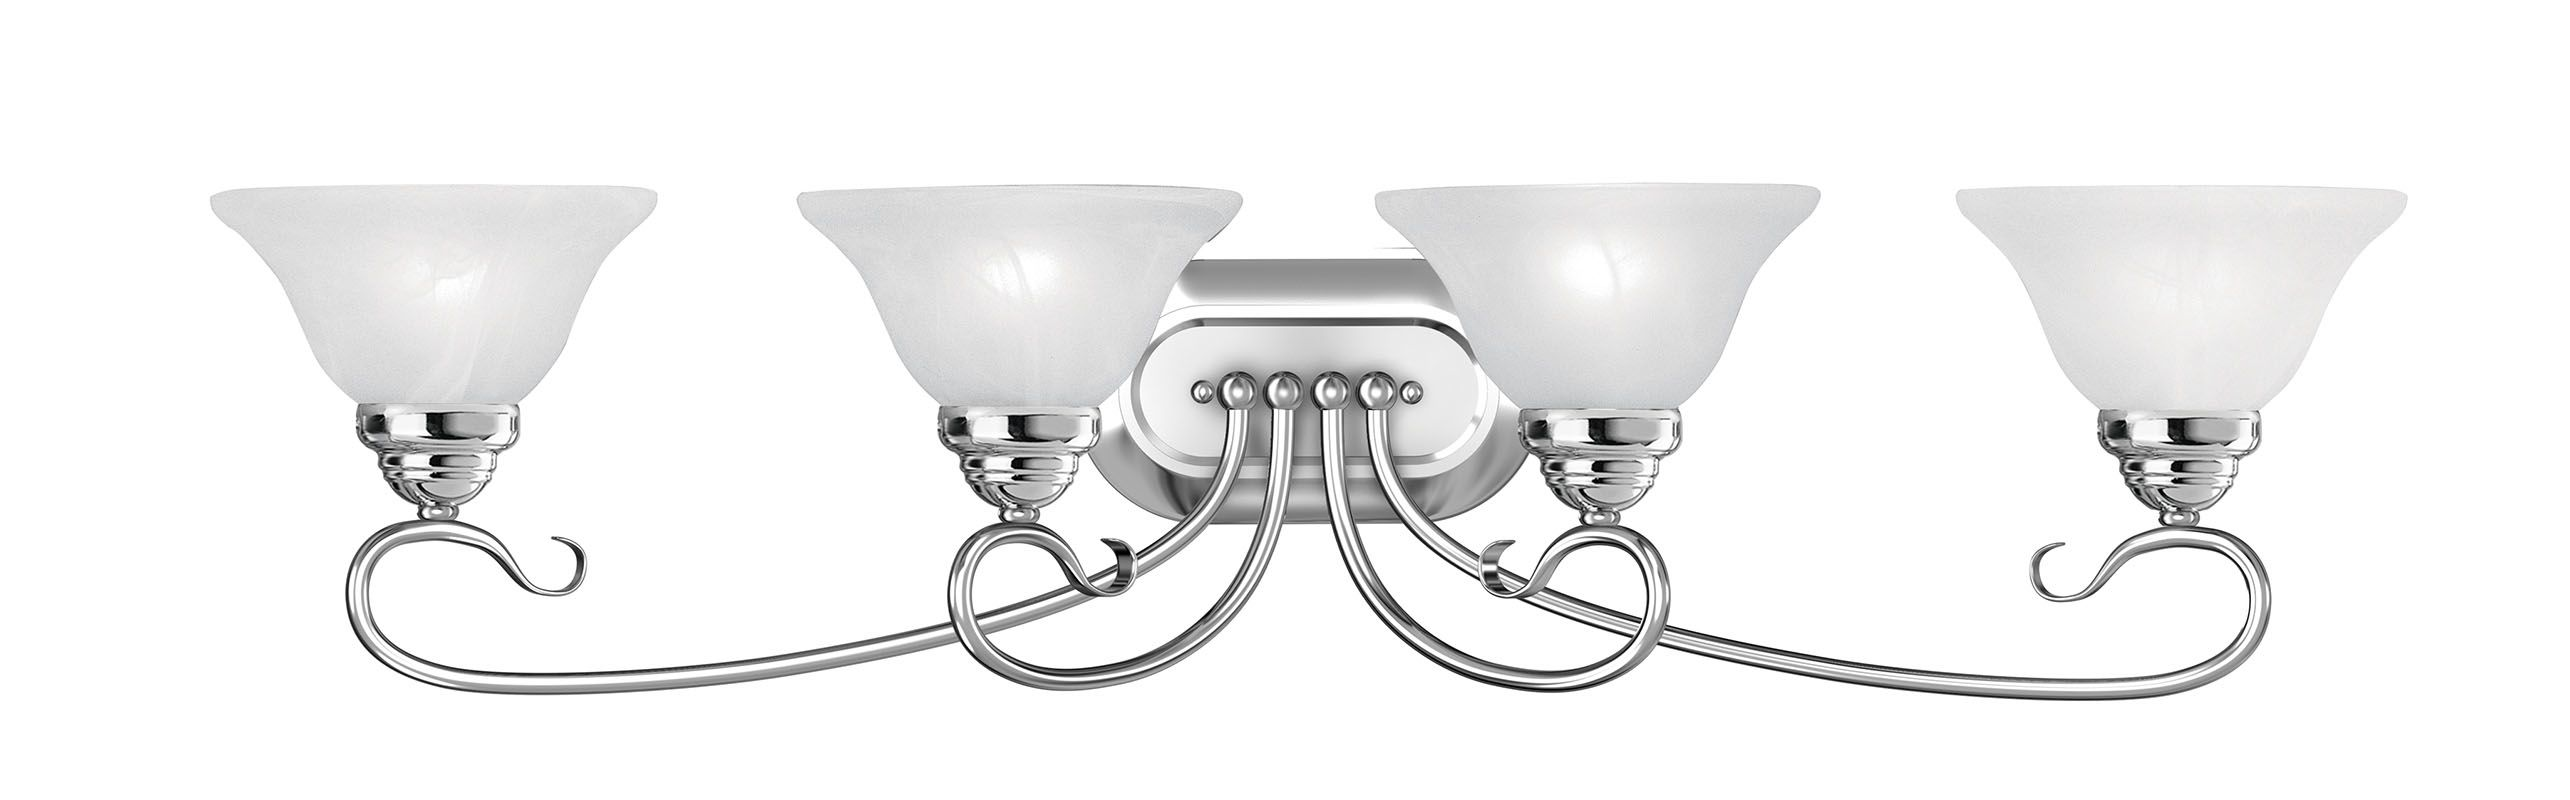 Livex Lighting 6104 Coronado 4 Light Bathroom Vanity Light Chrome